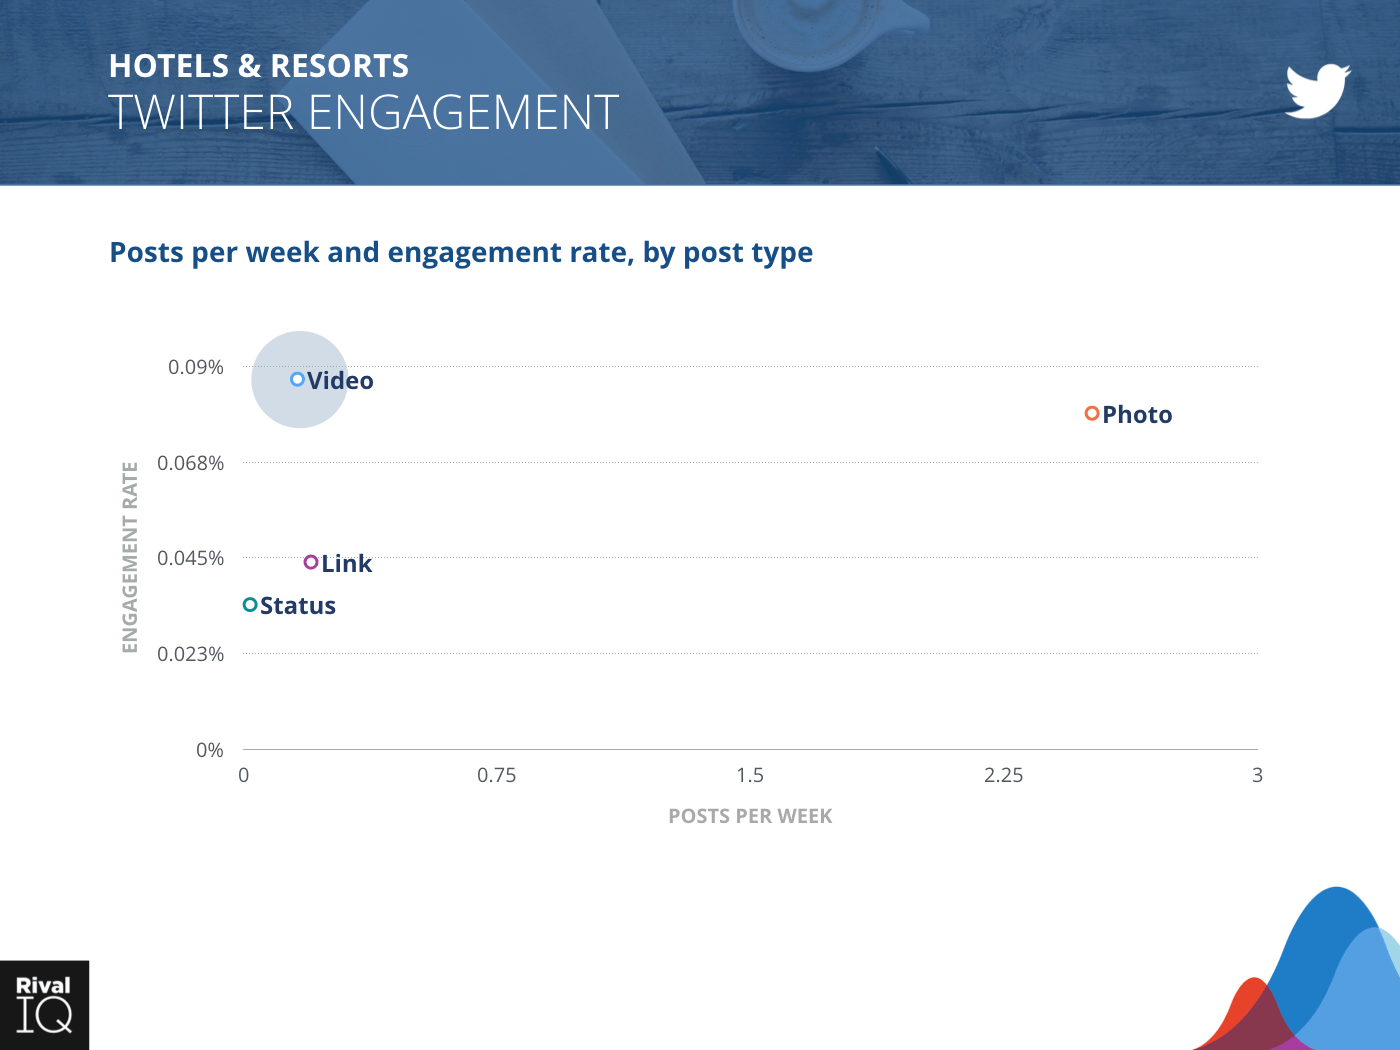 Hotels & Resorts Industry: scatter graph, posts per week and engagement rate on Twitter by post type